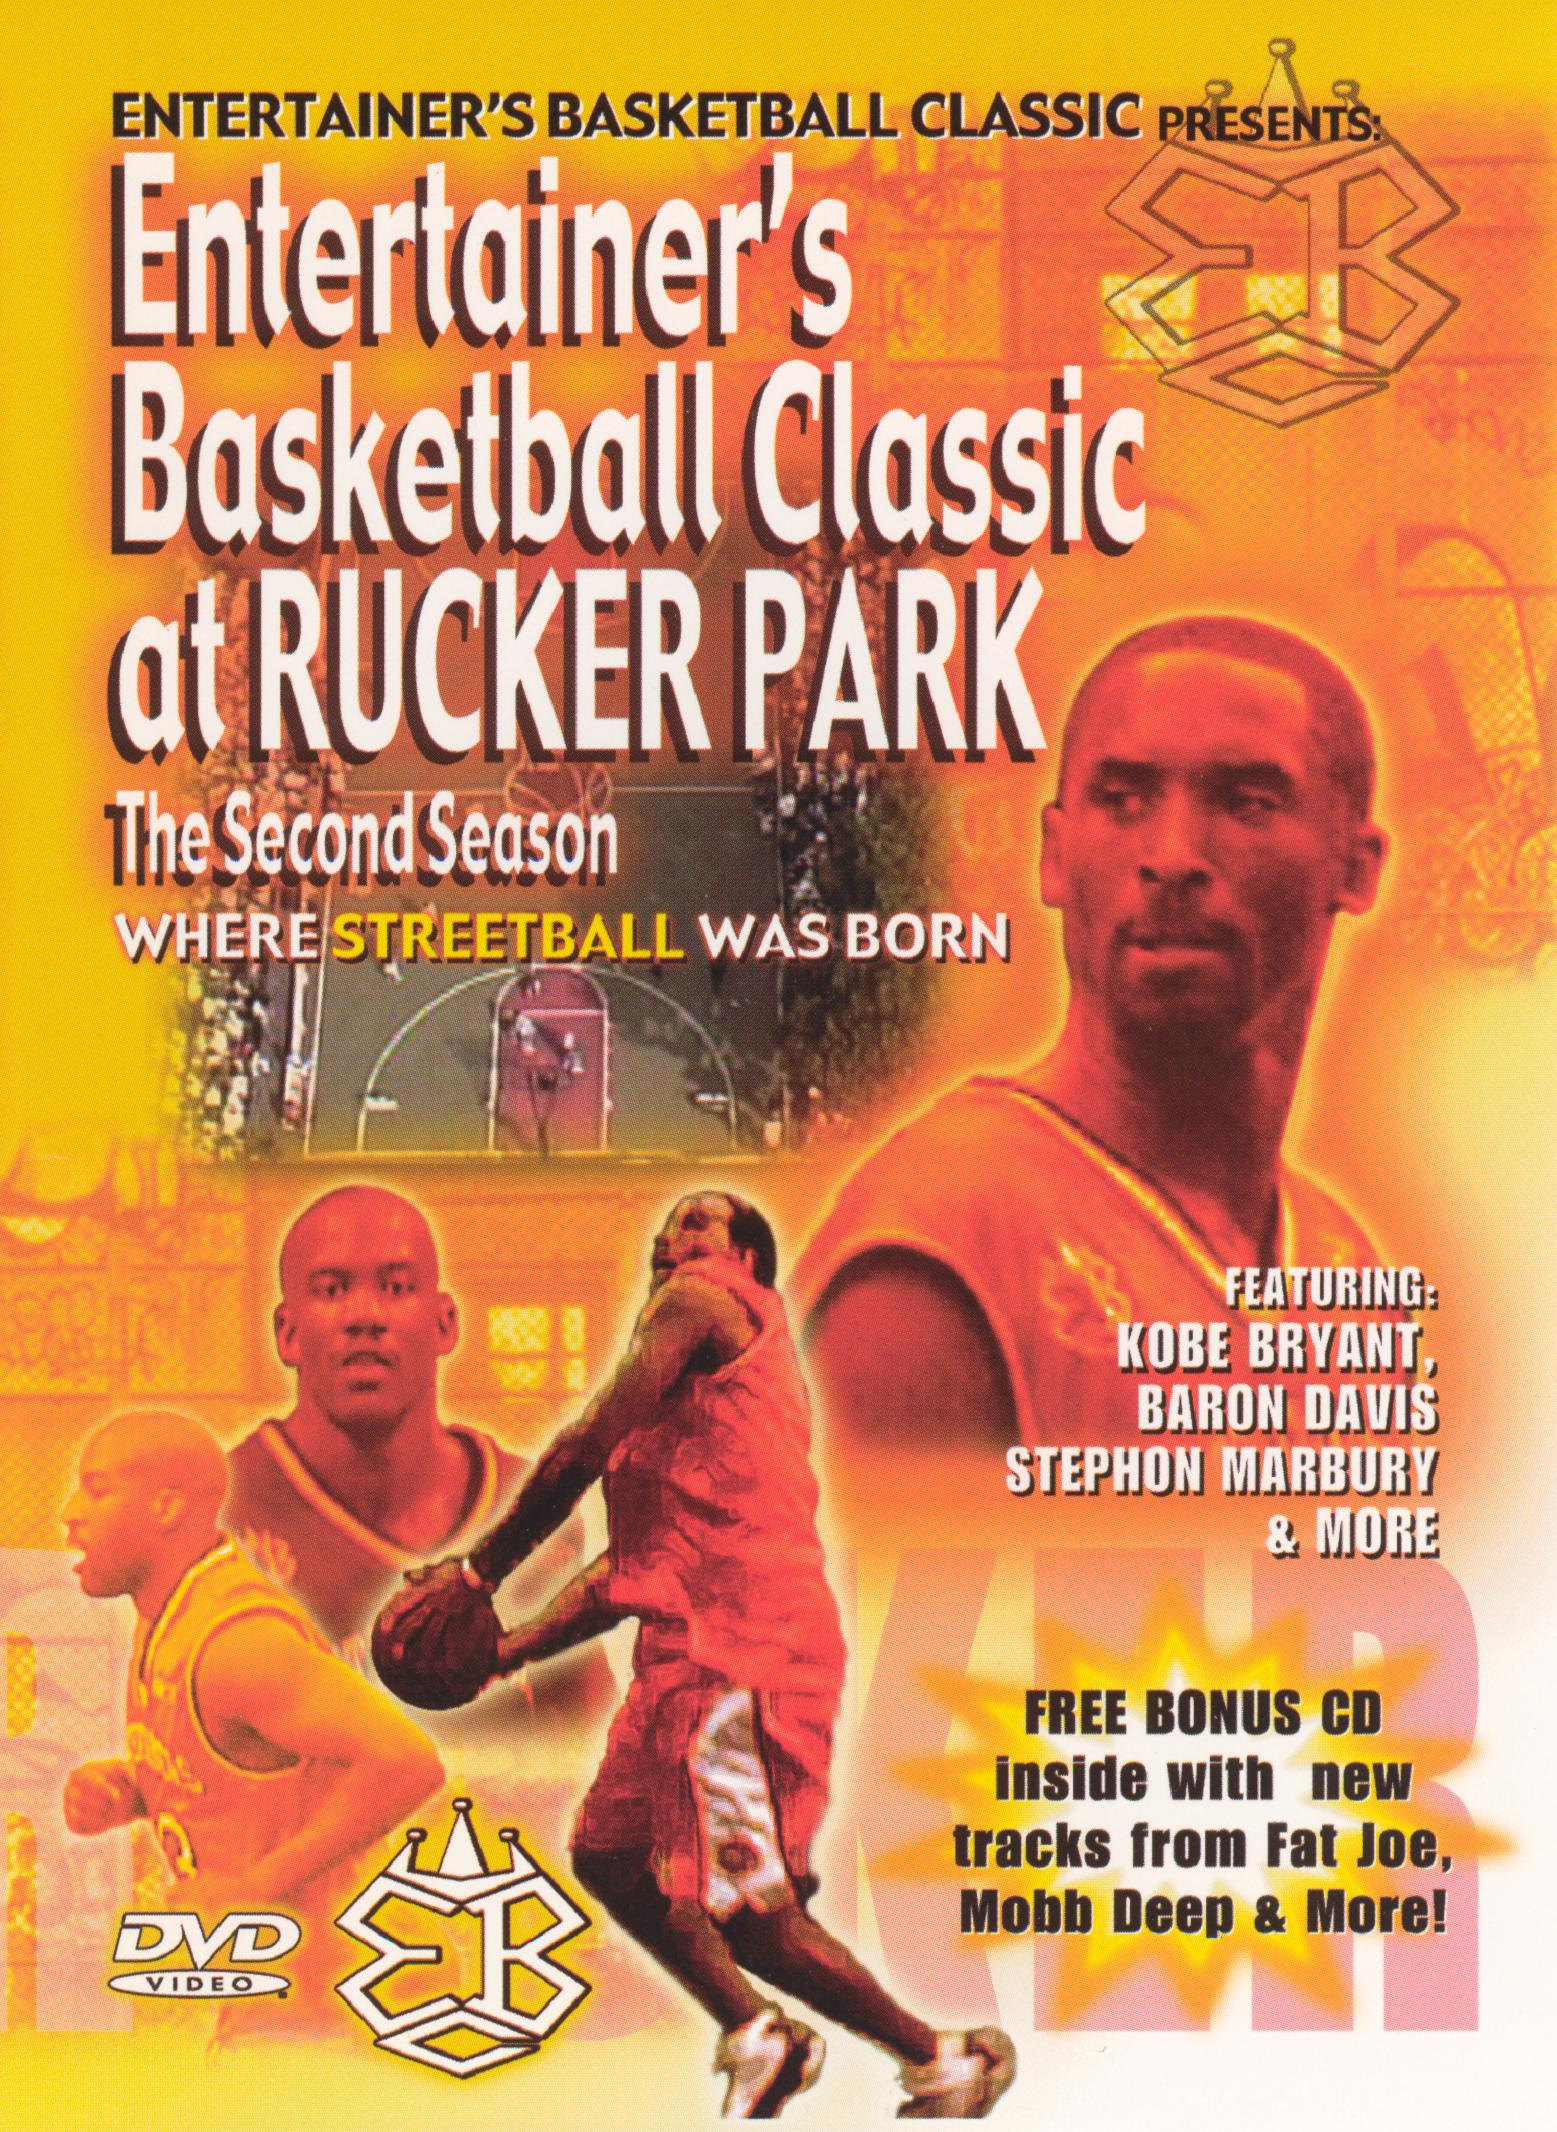 Entertainer's Basketball Classic at Rucker Park: The Second Season